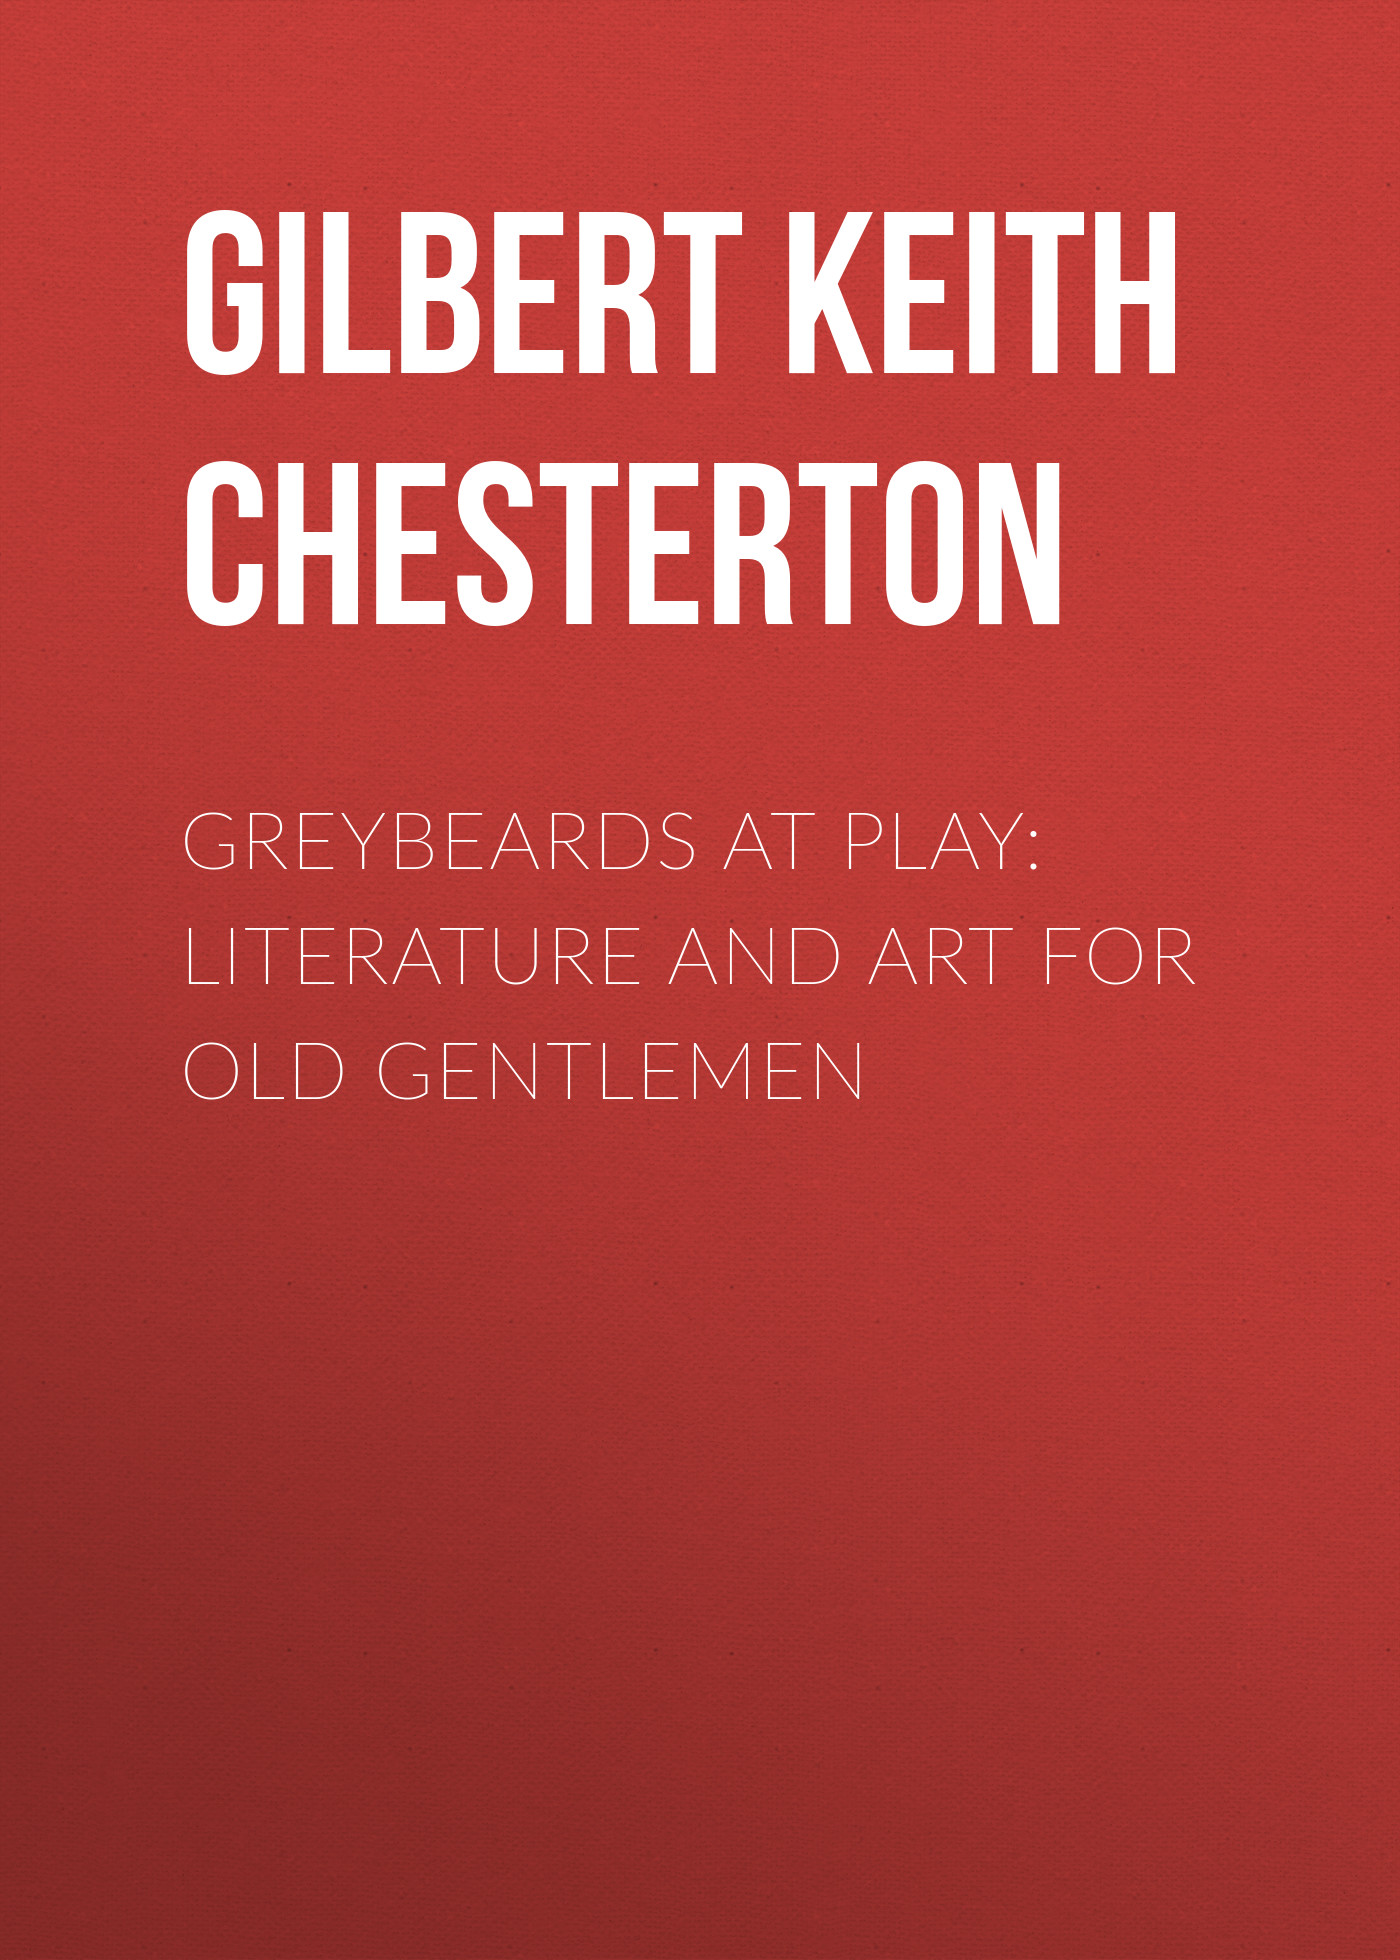 Gilbert Keith Chesterton Greybeards at Play: Literature and Art for Old Gentlemen